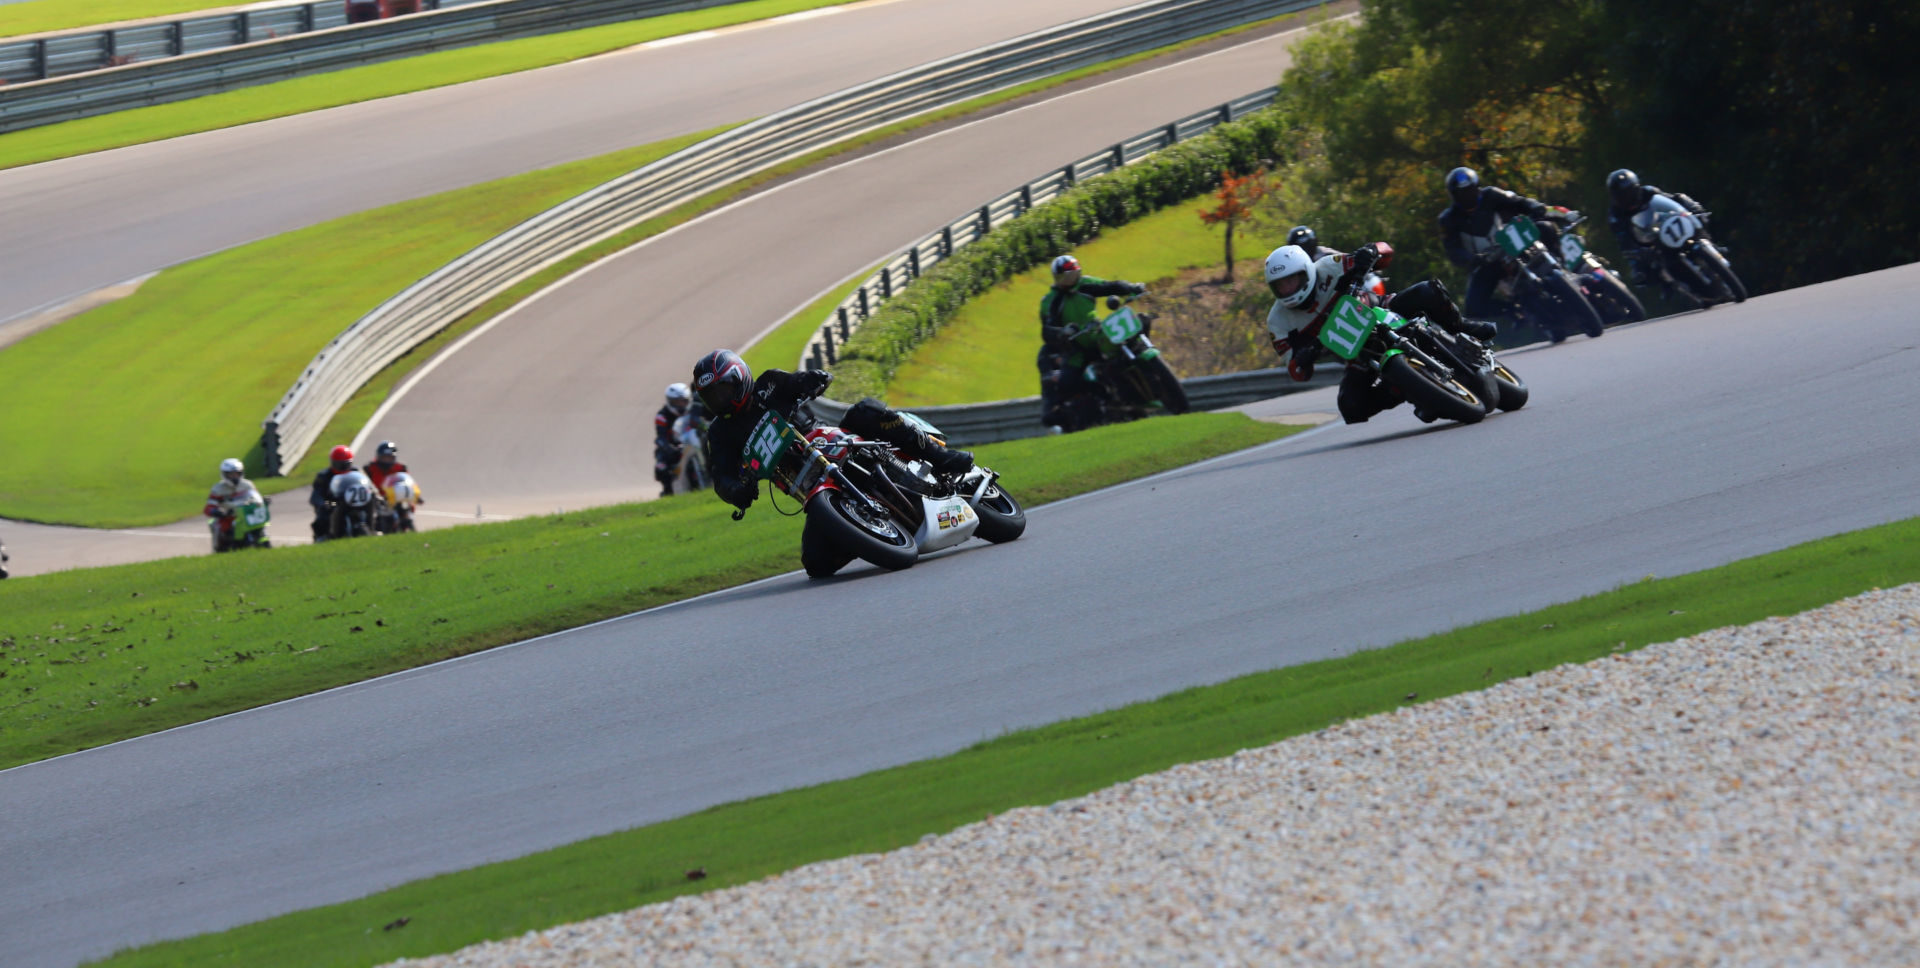 Action from the AHRMA Vintage Superbike Heavyweight race on October 9 with Dale Quarterley (32Q) leading David Crussell (117), Dennis Parrish (1R), Kenny Cummings (17), Martin Jarusek (31), and Curtis Adams (045) into Turn Two at Barber Motorsports Park. Photo by etechphoto.com, courtesy AHRMA.